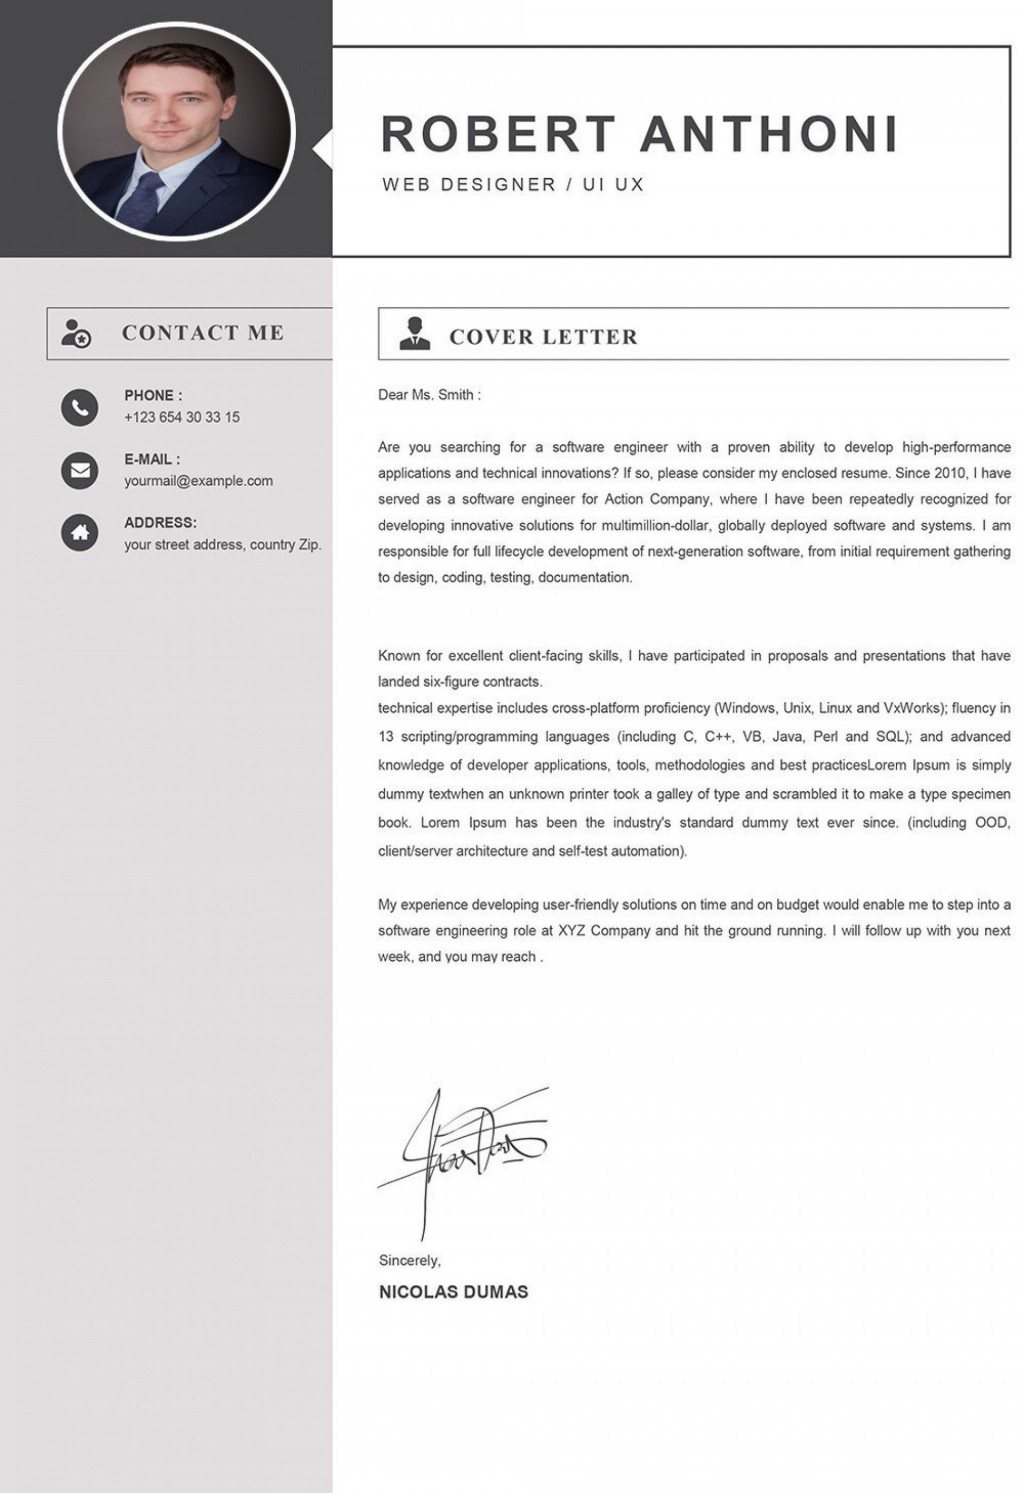 006 Archaicawful Cover Letter Template Download Mac Inspiration  FreeLarge